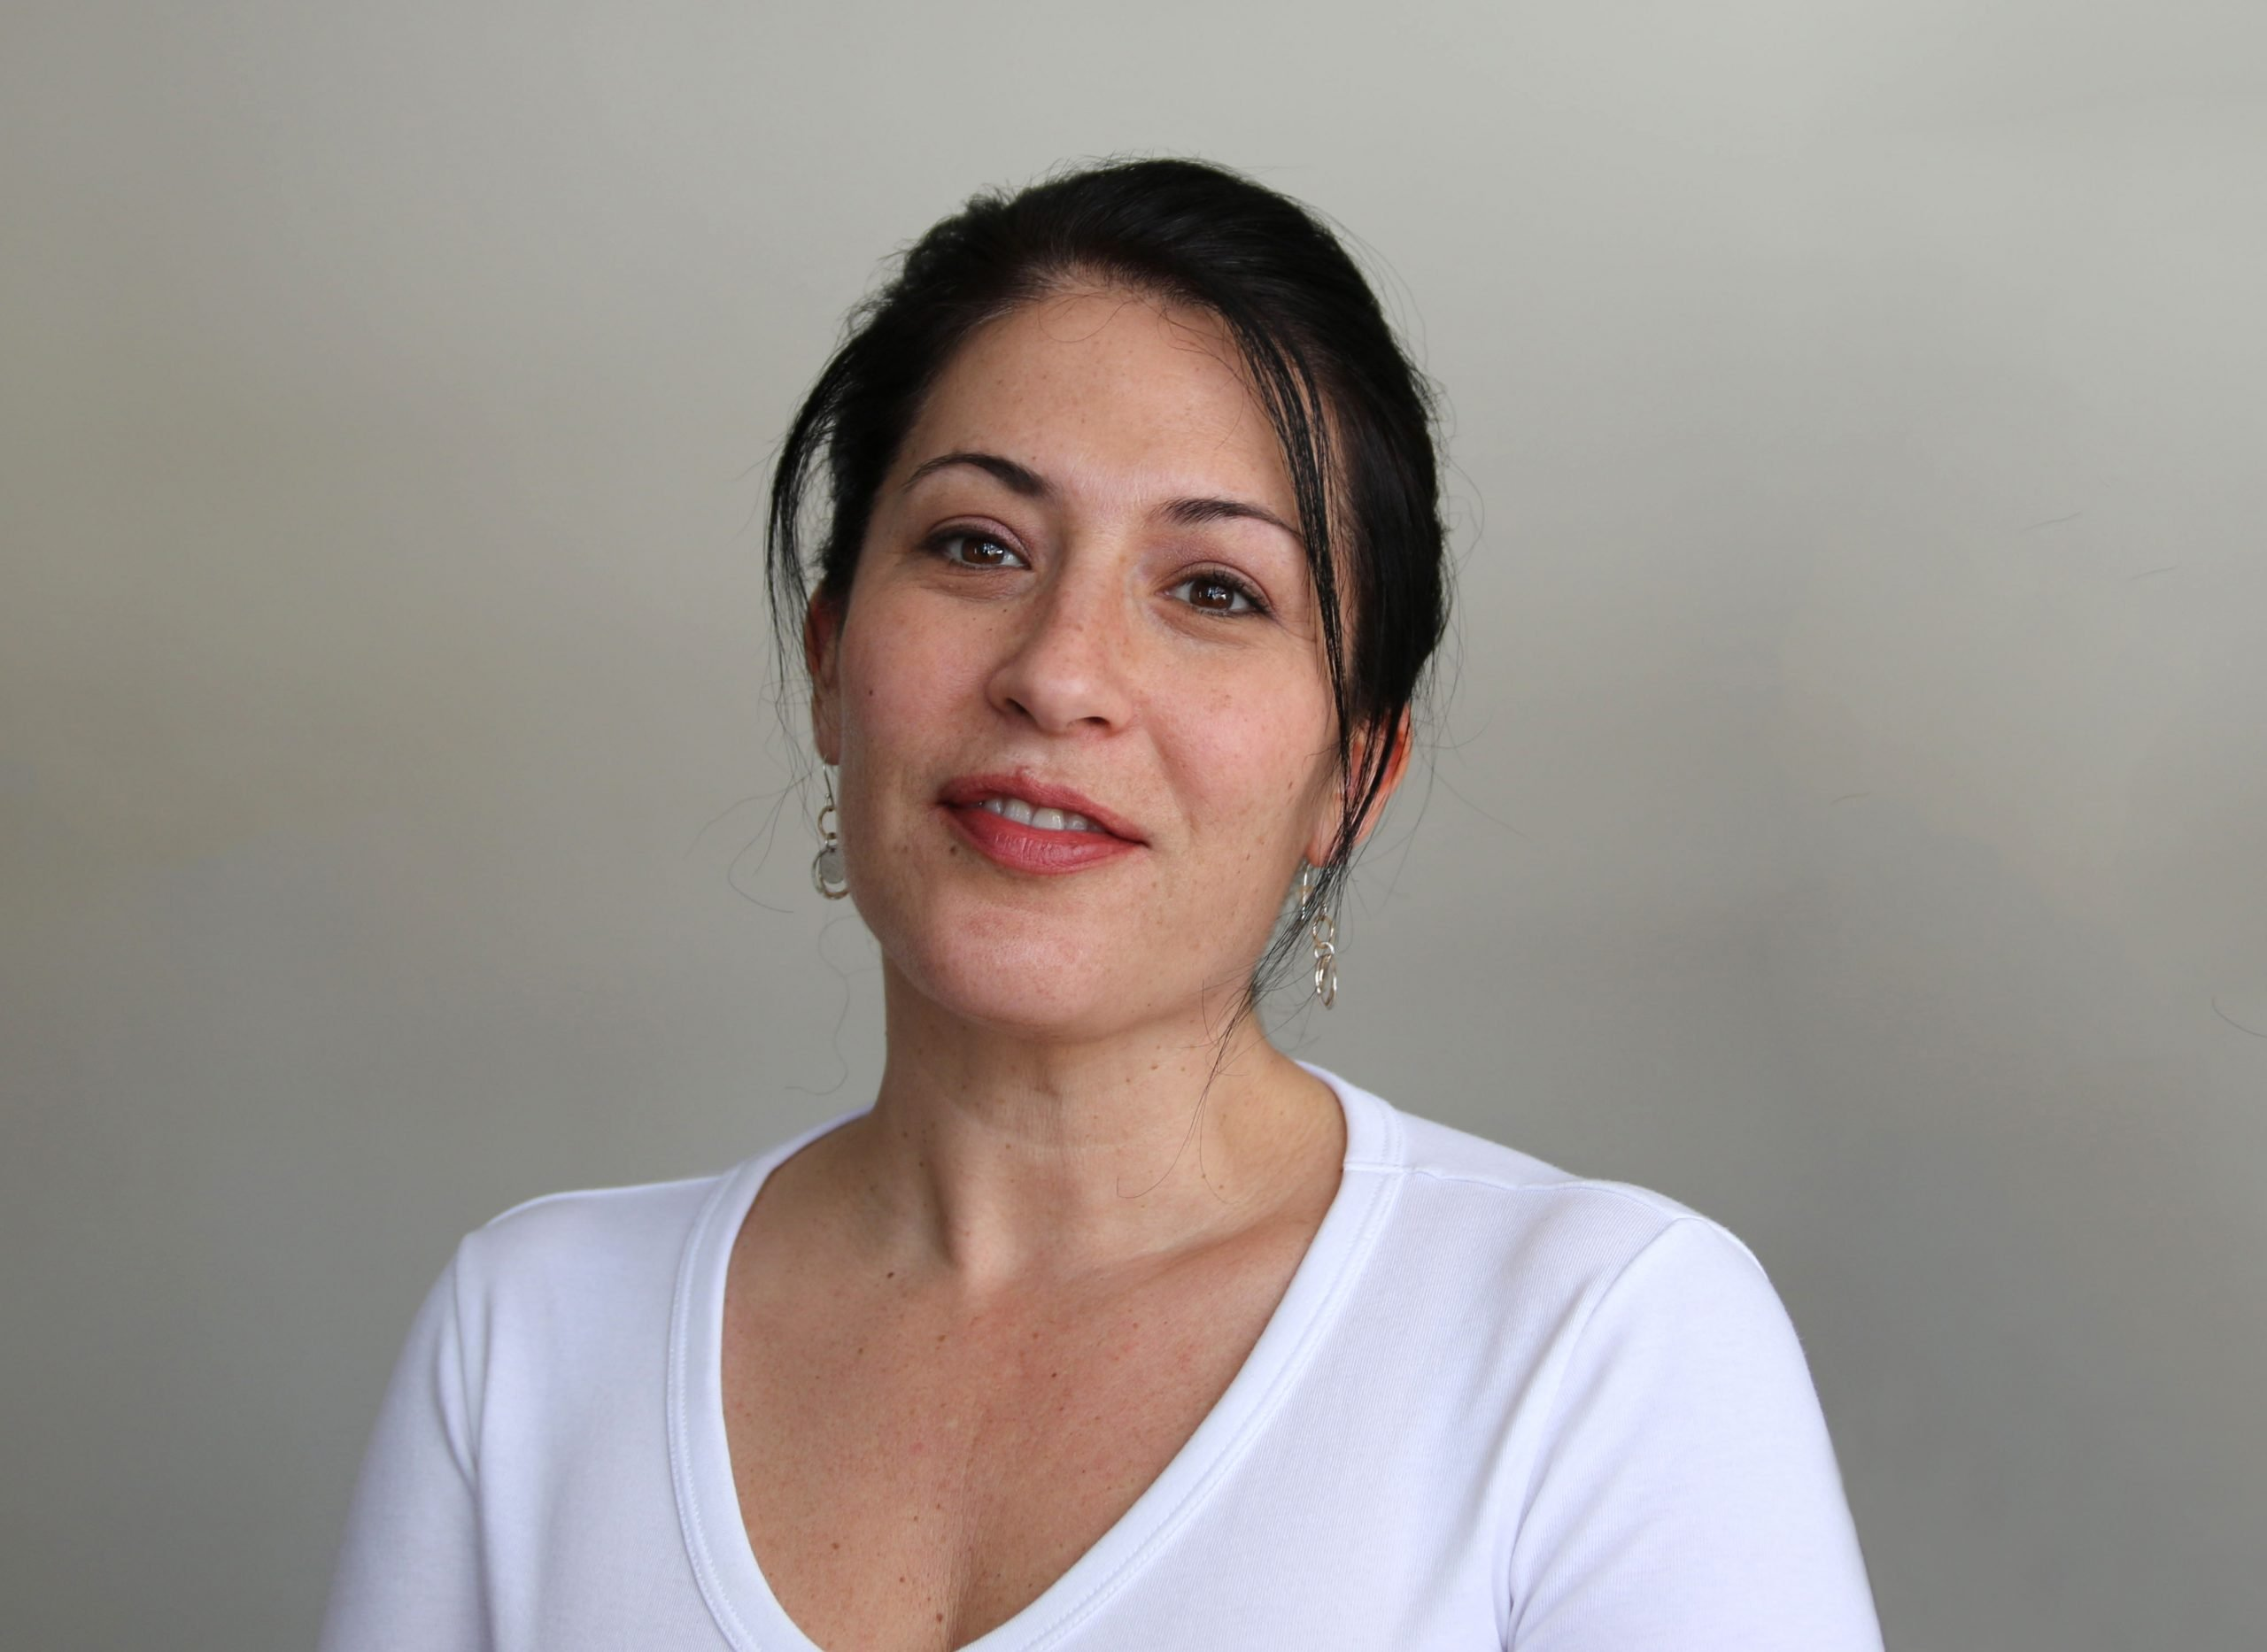 Ada Limón, Author, Poet and contributor to our #ClimateVisionaries Project